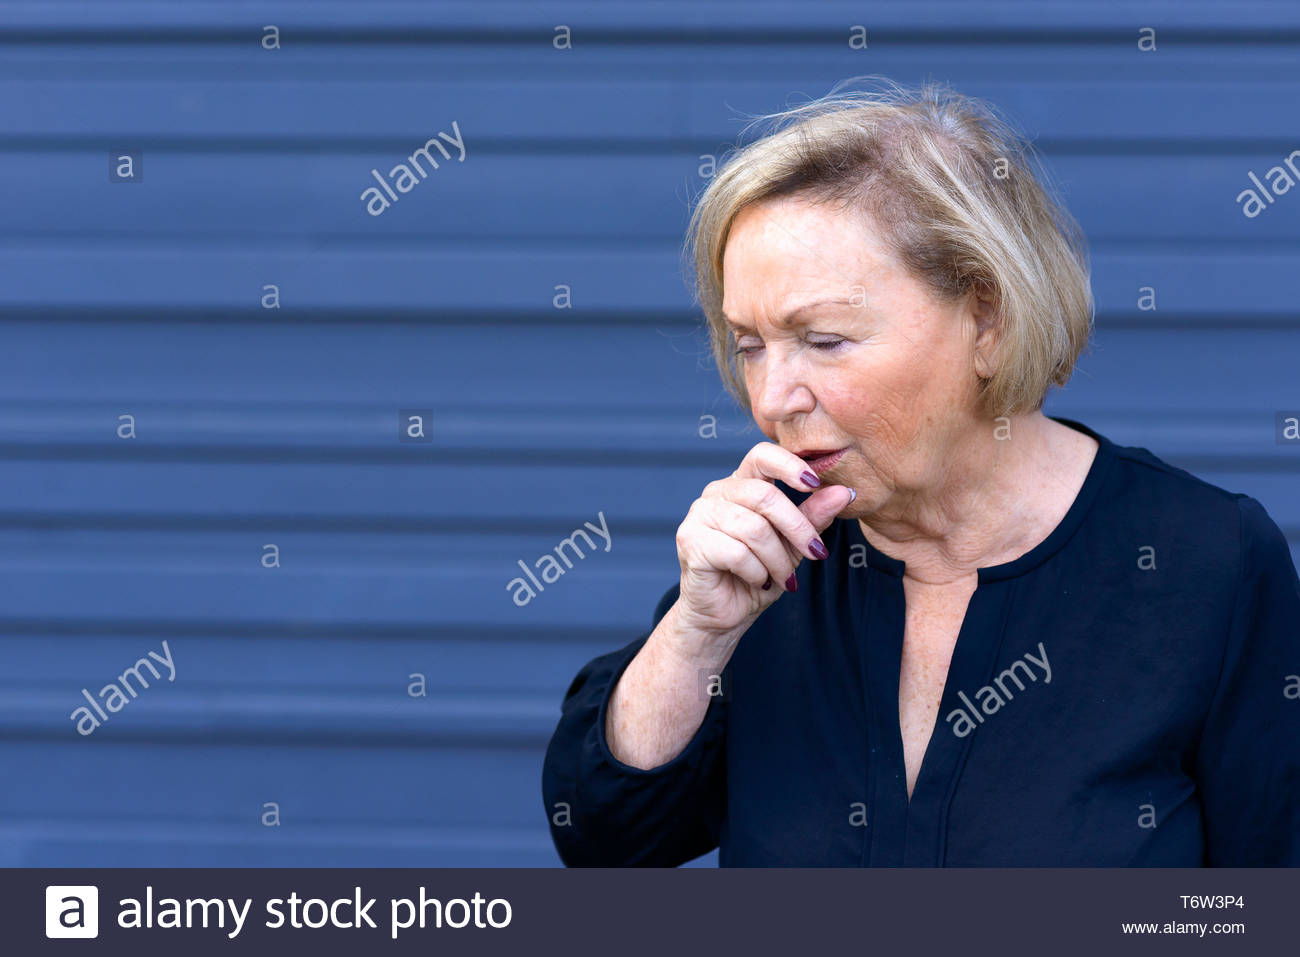 Unwell elderly lady having a coughing fit - Stock Image